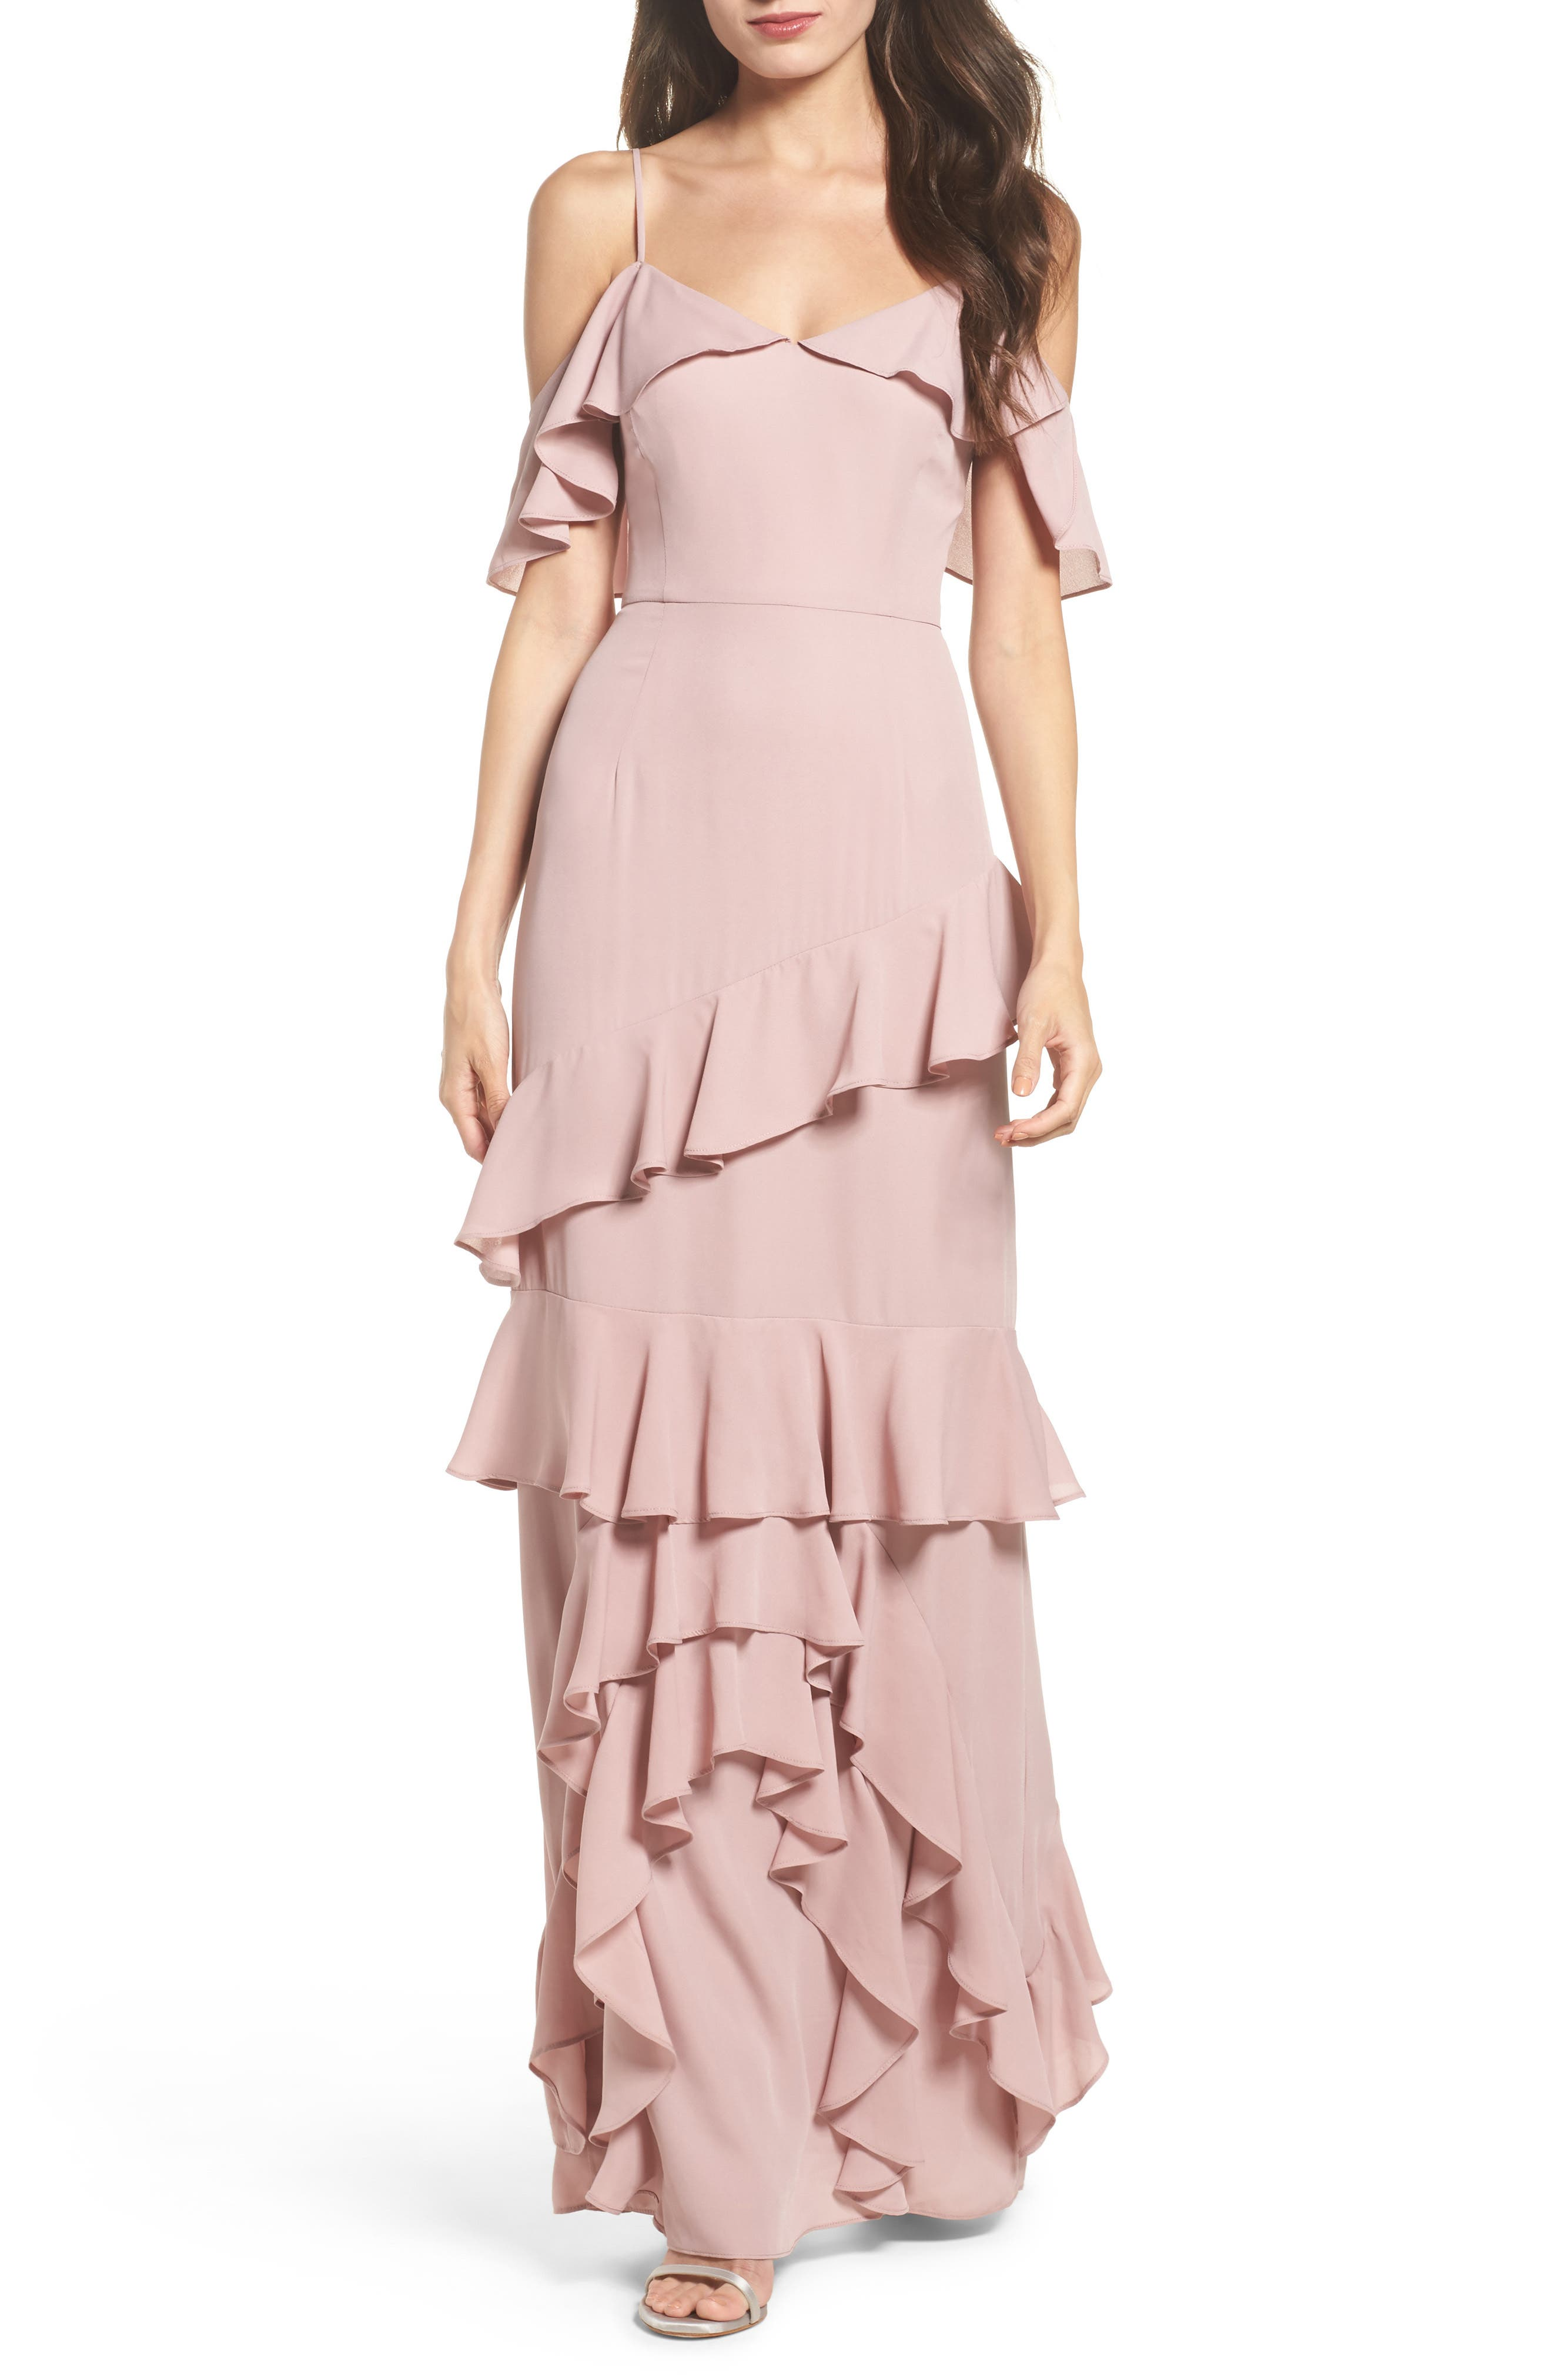 Main Image - WAYF Danielle Off the Shoulder Tiered Crepe Dress